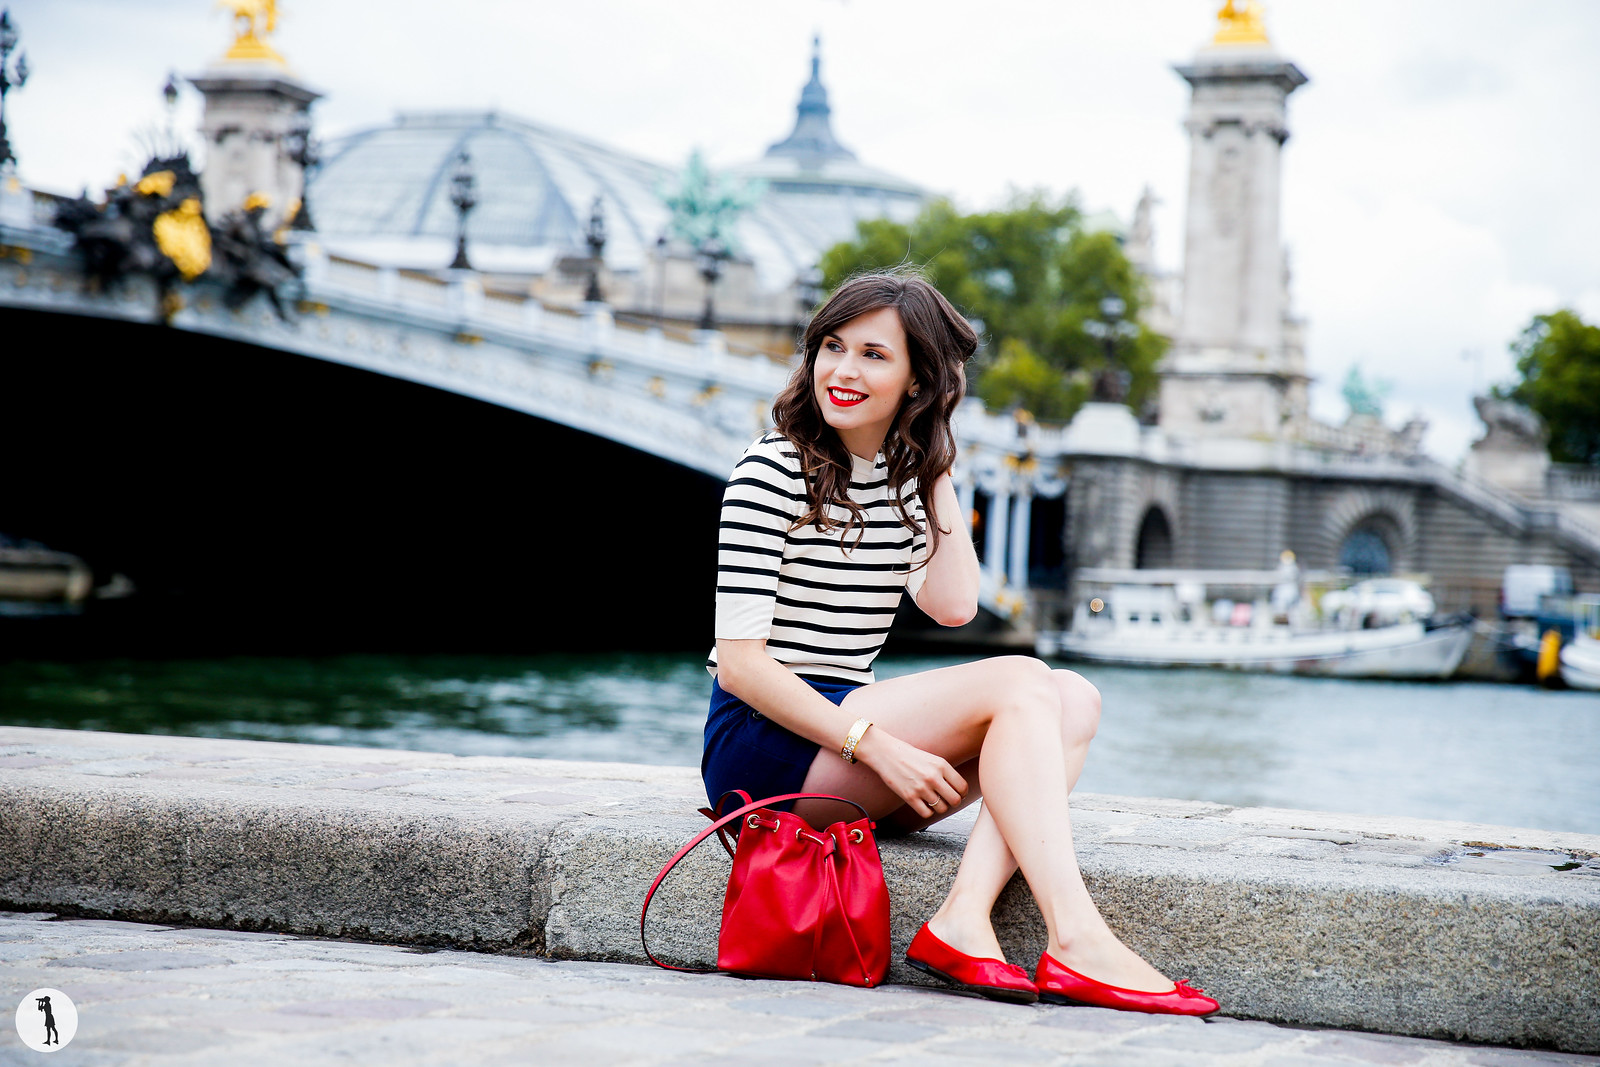 Beauty shooting for Bourjois in Paris. Street style. Daphne mode and the city.